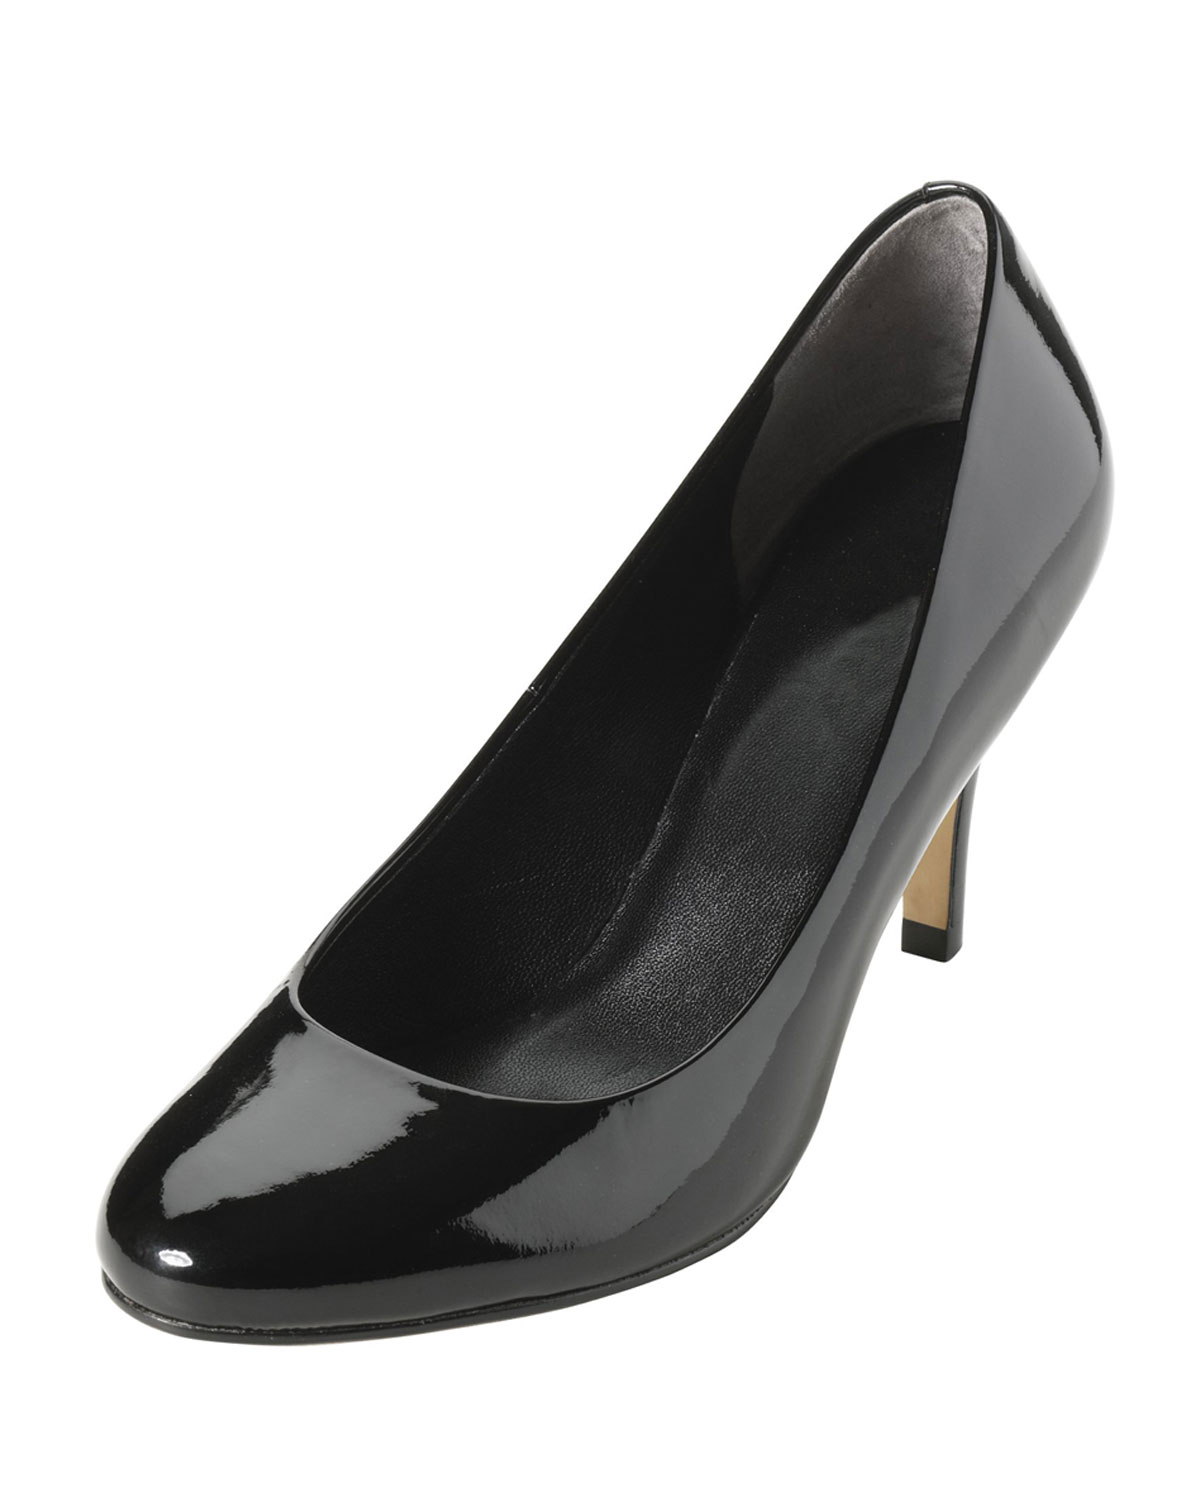 85704280aedb Lyst - Cole Haan Air Lainey Patent Leather Pump Black in Black